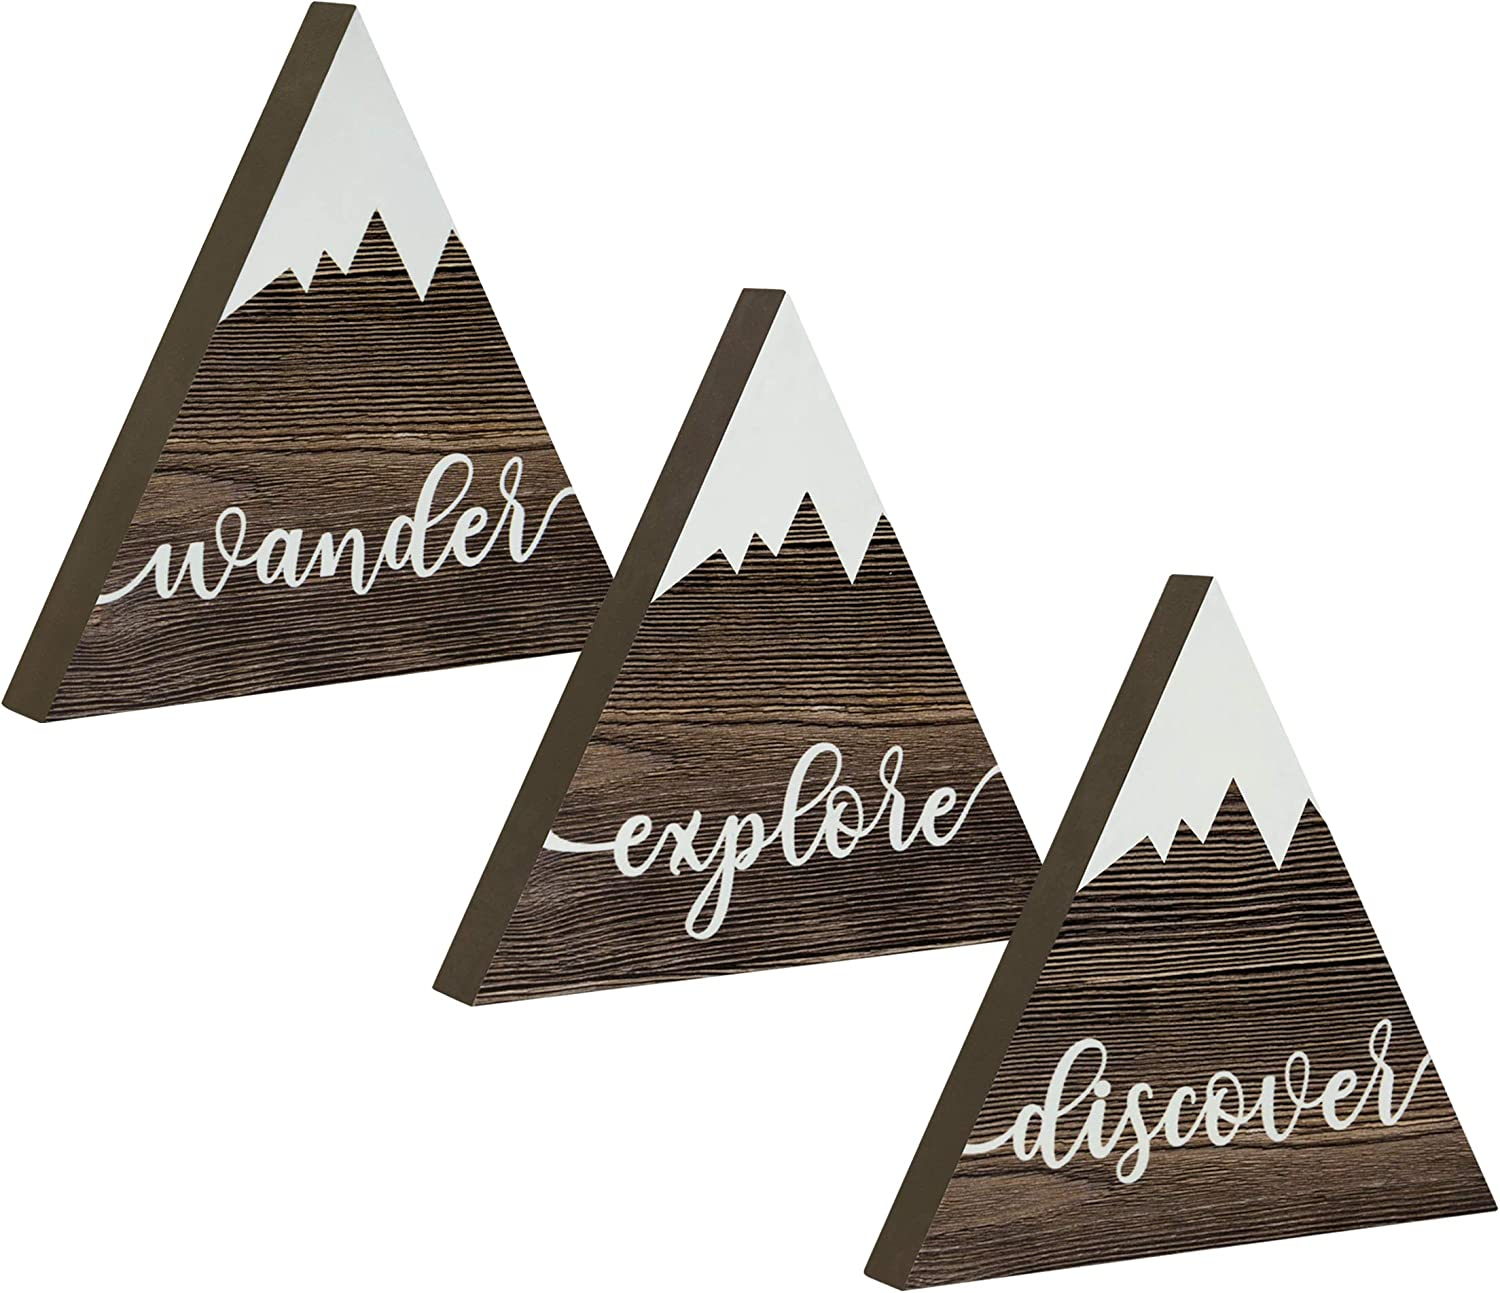 Riverside Rustics Hanging or Standing Wooden Mountain Decor - Woodland Adventure Newborn Baby Girl, Boy or Gender Neutral Nursery Table, Wall and Shelf Decoration - Wander Explore Discover, Set of 3